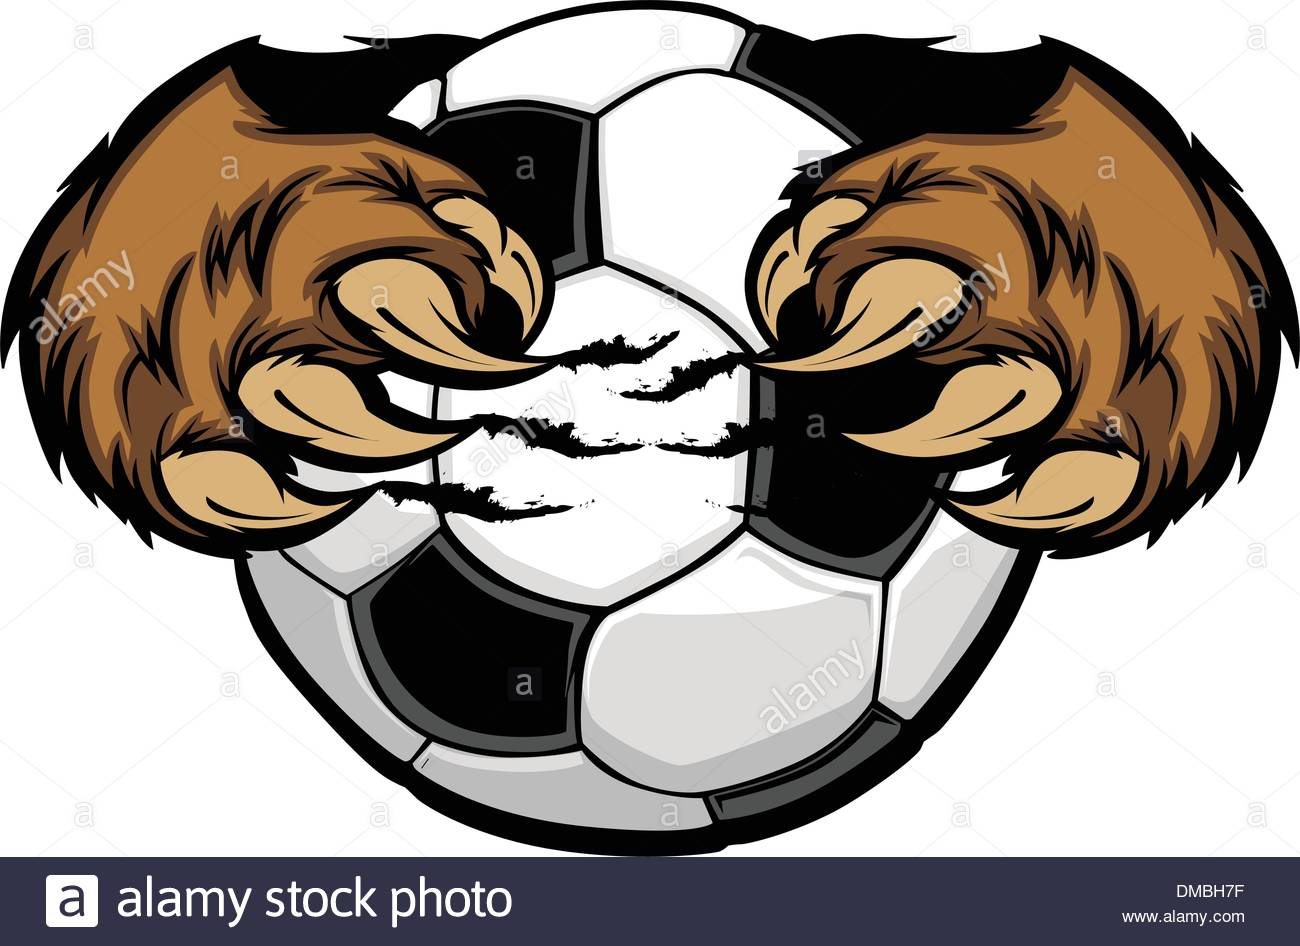 1300x946 Soccer Ball With Bear Claws Vector Image Stock Vector Art